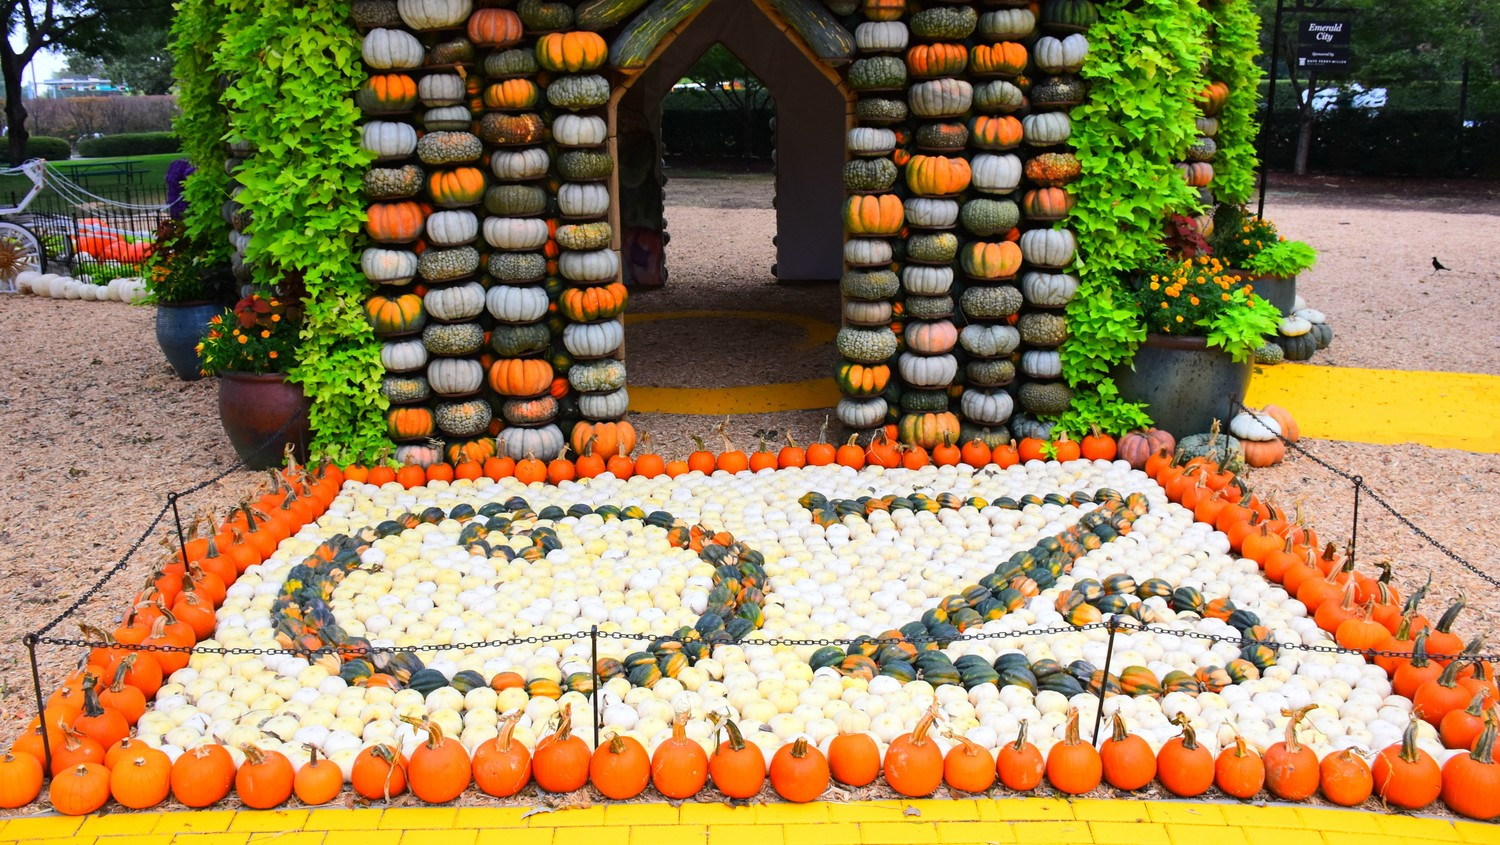 take a tour of the 90 000 pumpkins at the dallas arboretum and